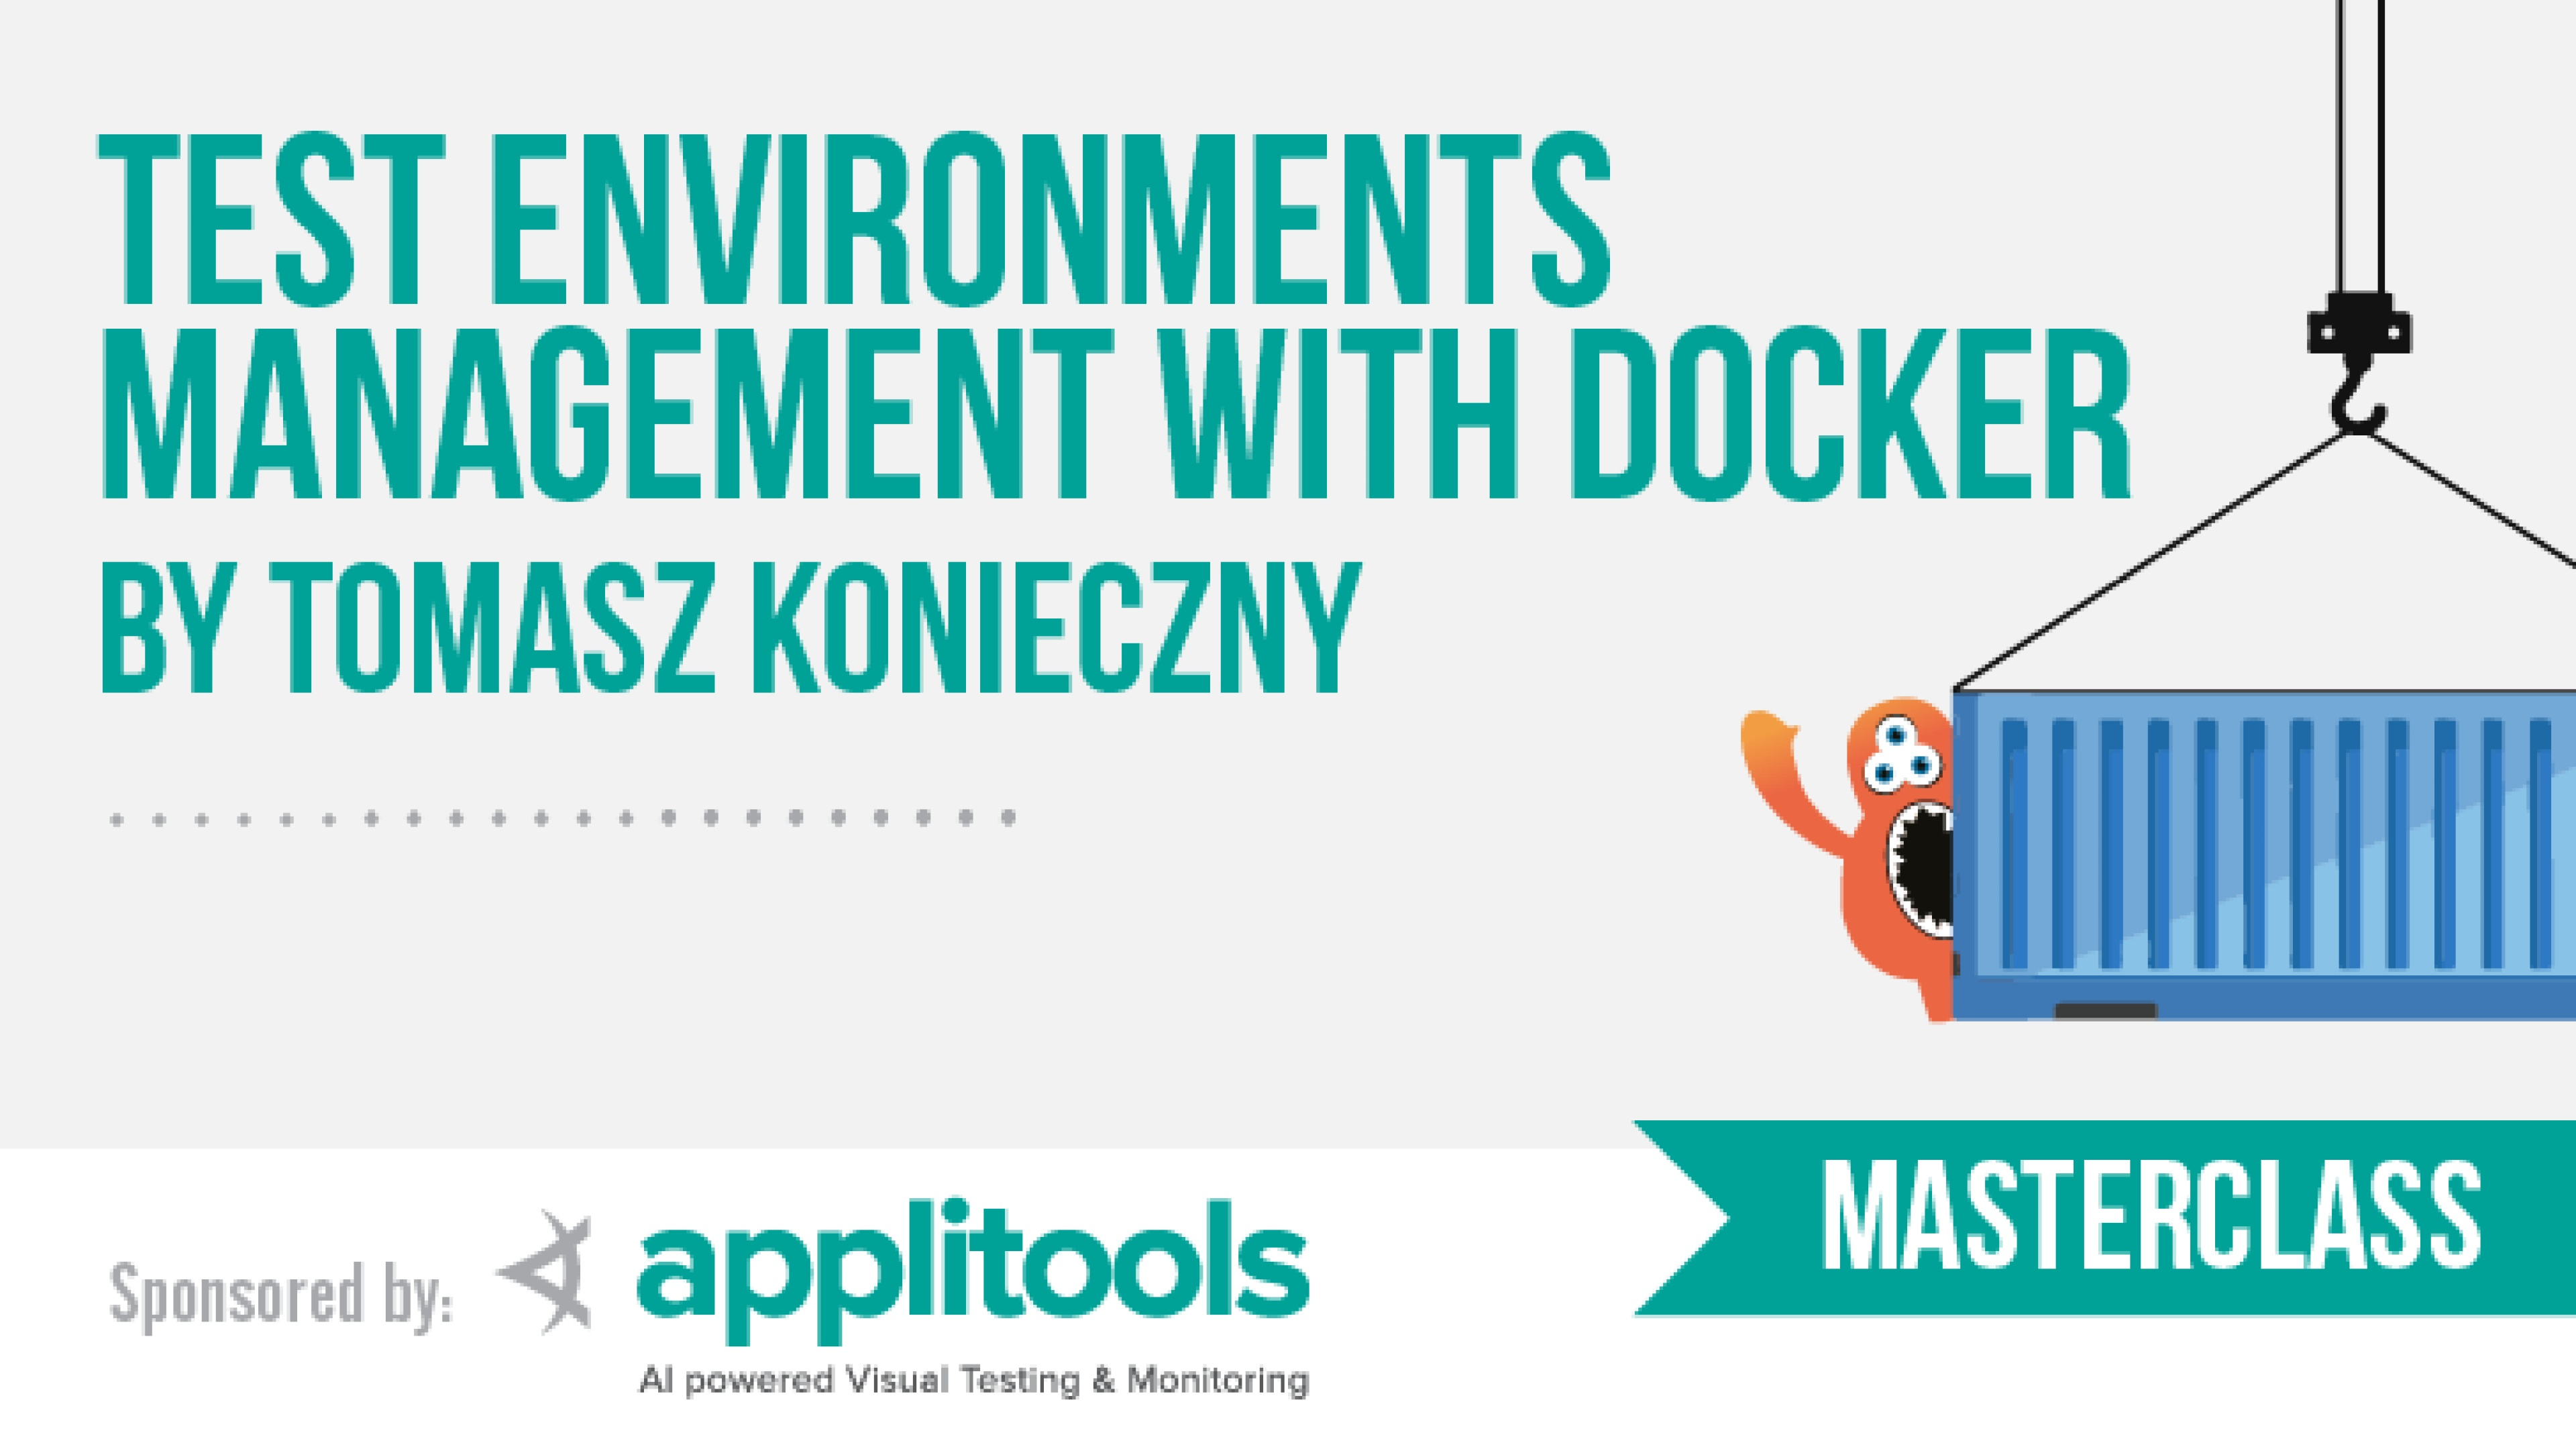 Test Environments Management with Docker with Tomasz Konieczny